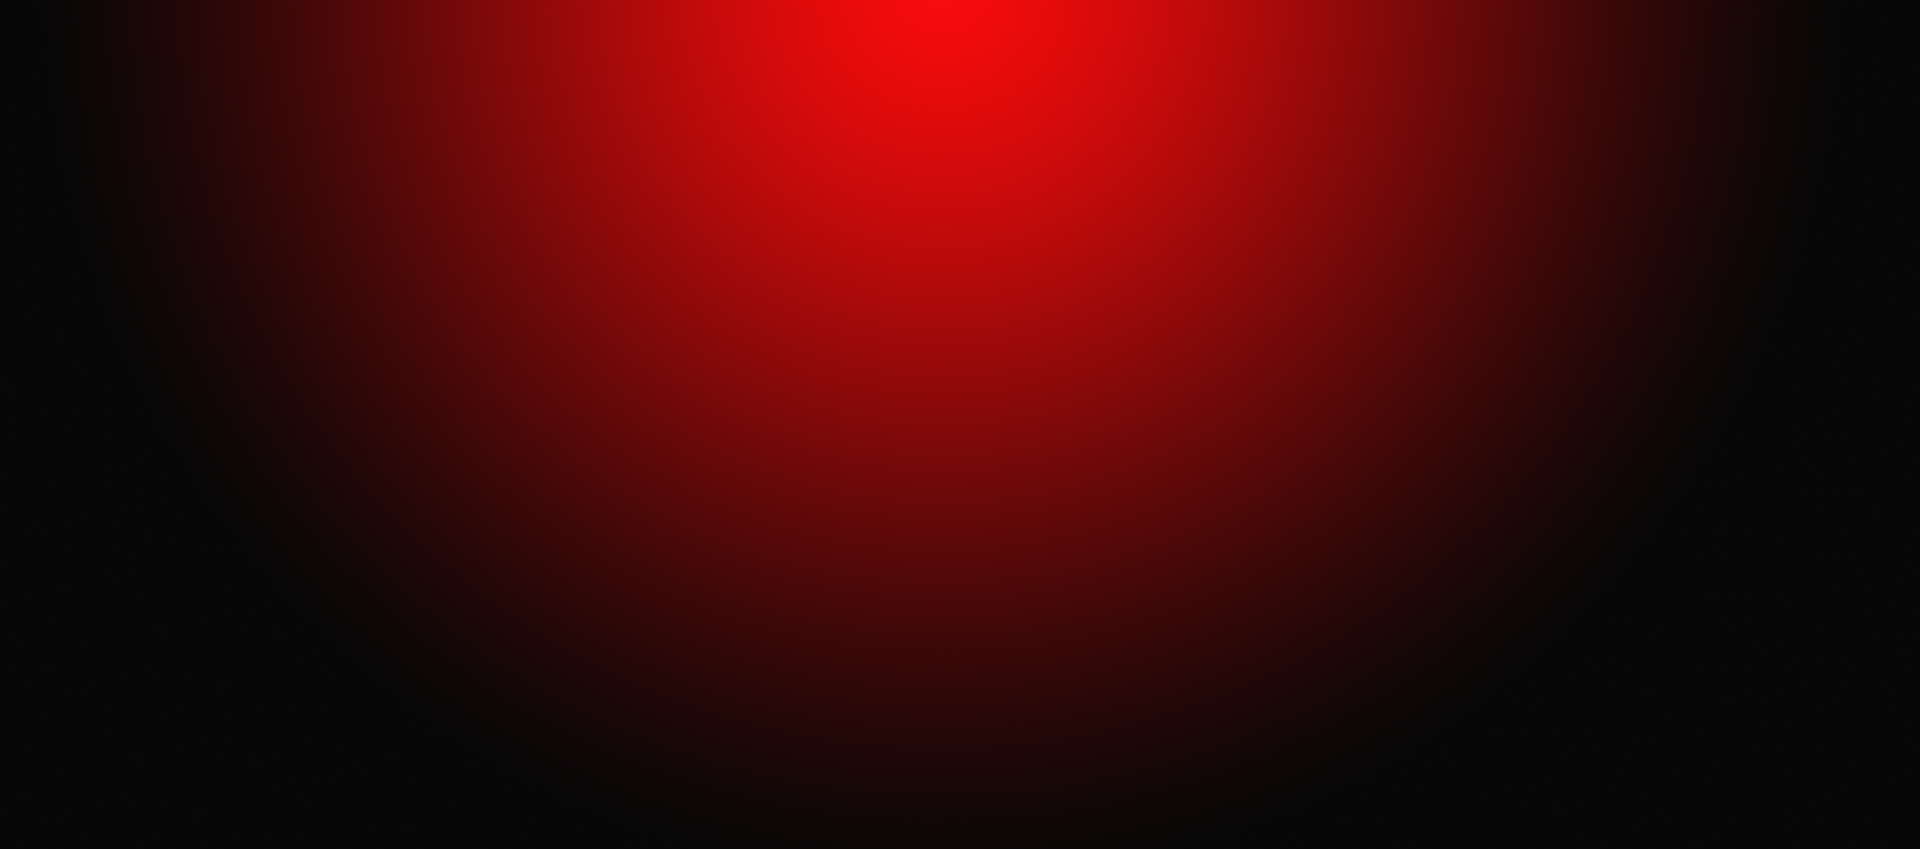 Cropped Red And Black Background Picture 17 Free Wallpaper Png The Vegan Vanguard